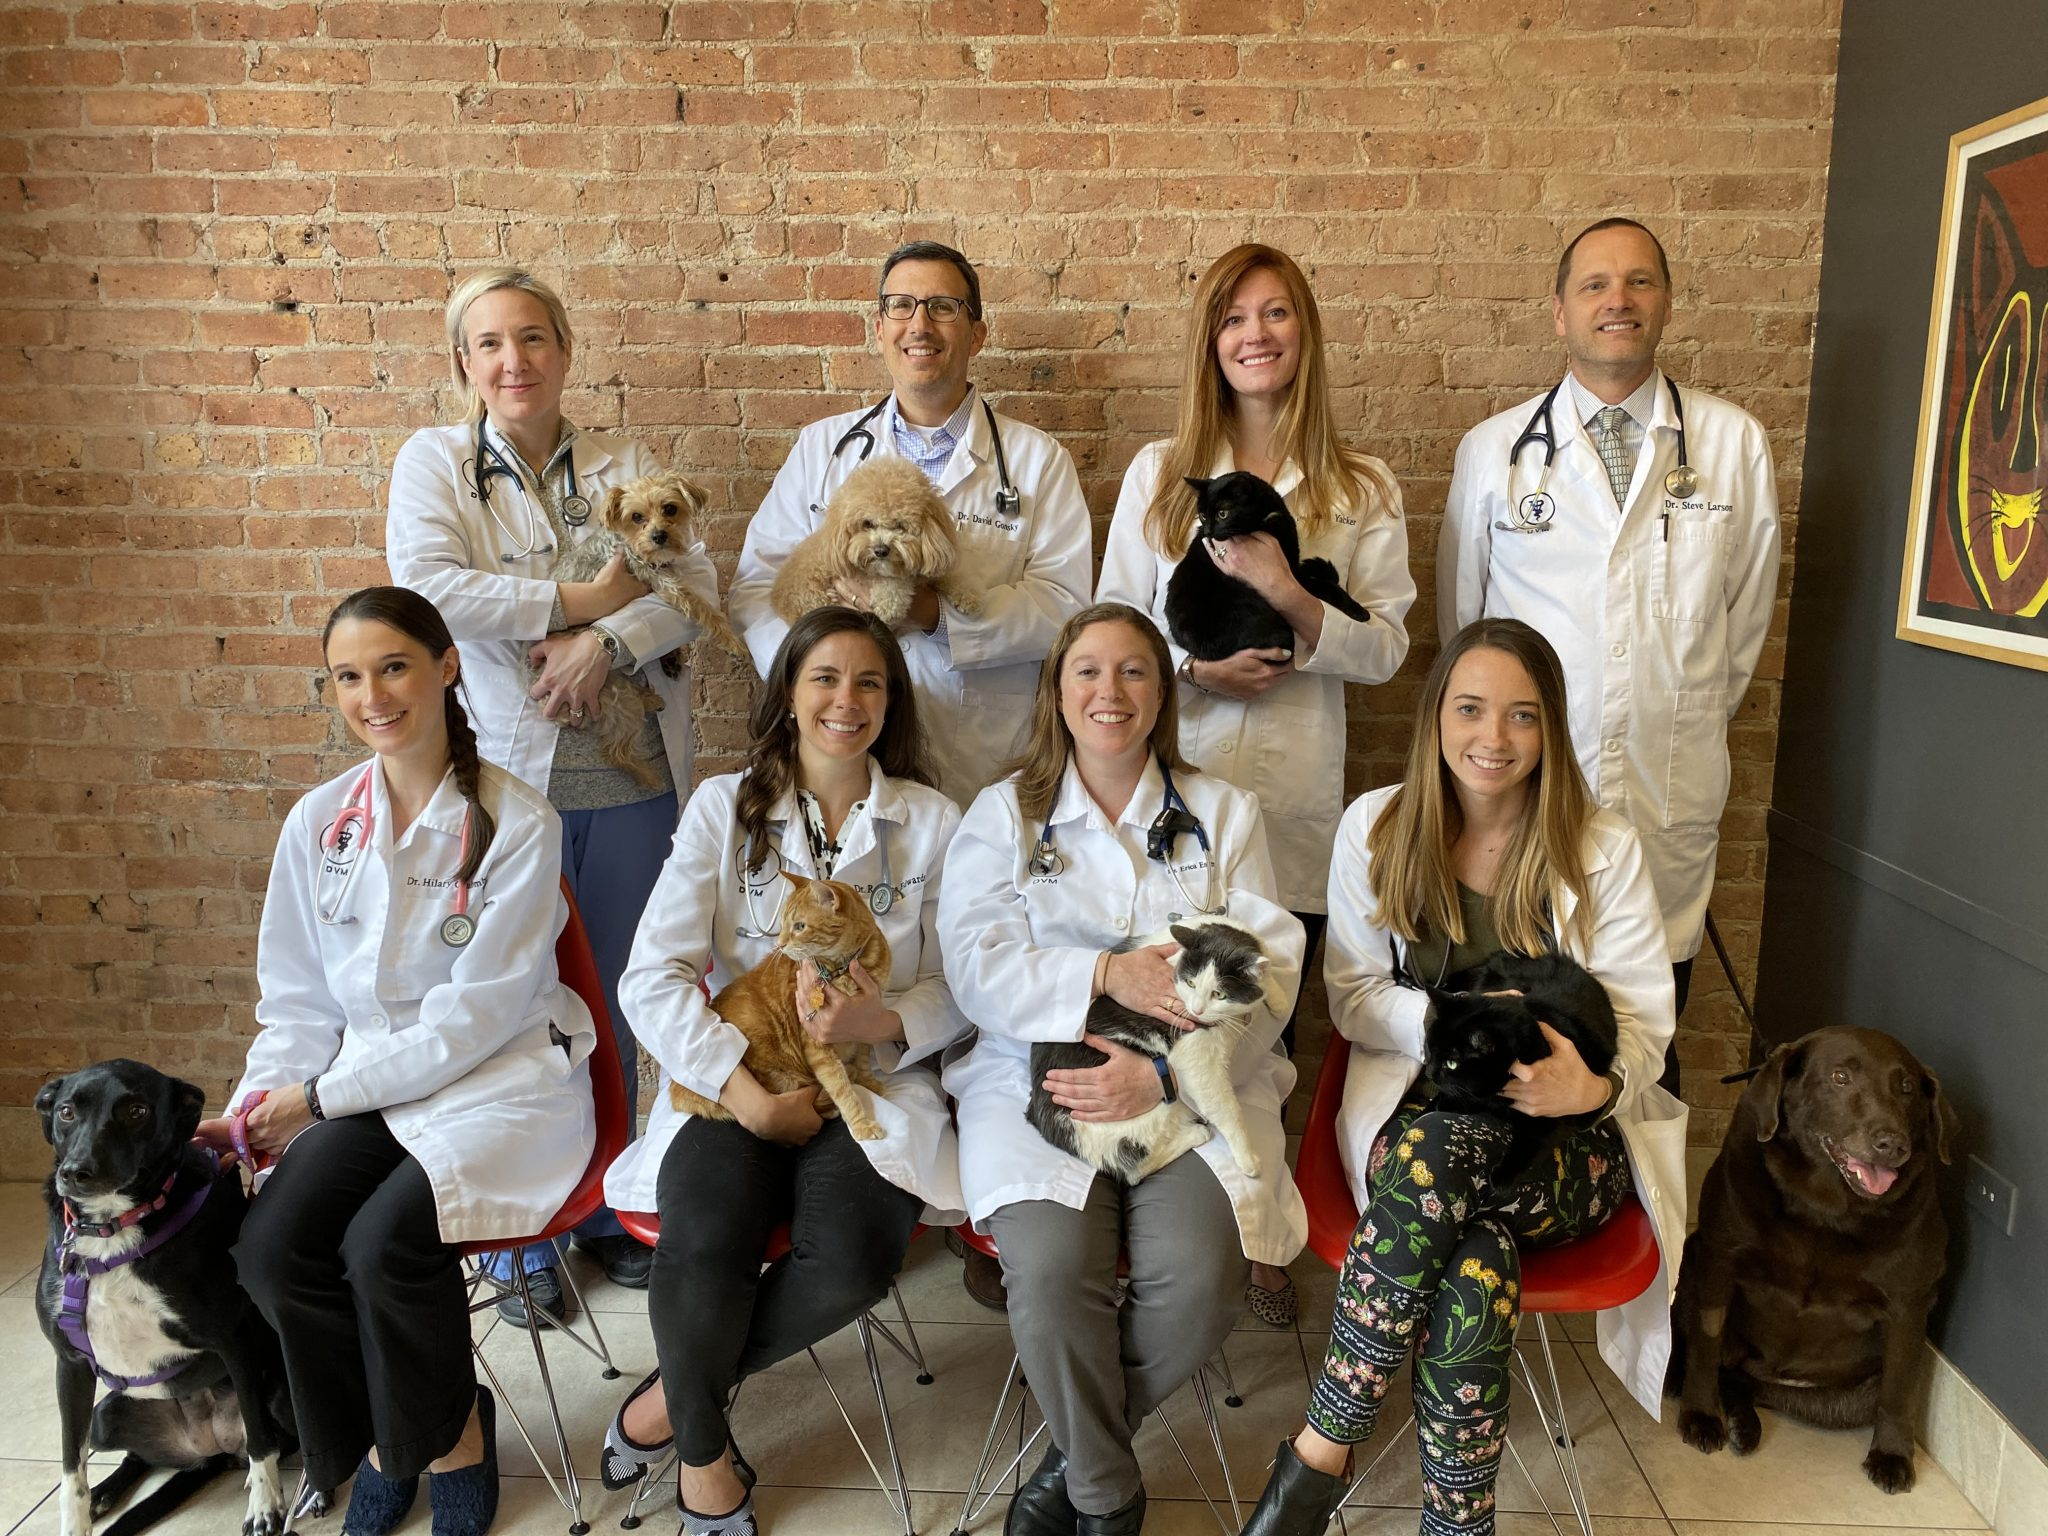 West Loop Veterinary care's veterinarian team holding dogs and cats